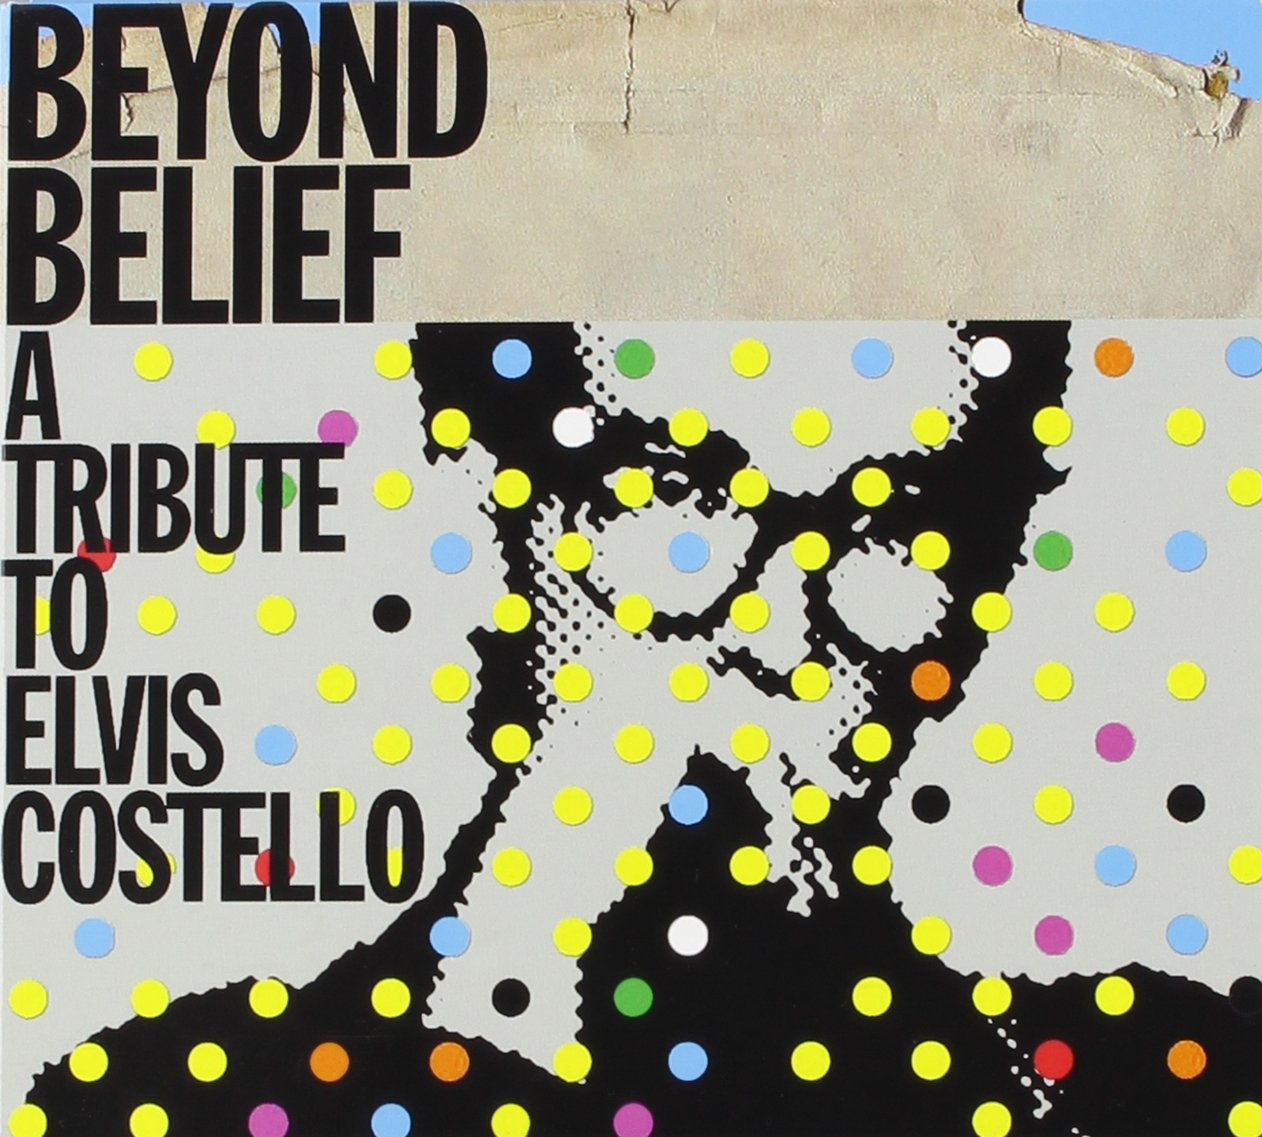 Beyond Belief: Tribute Costello Elvis Max 81% OFF Tucson Mall to